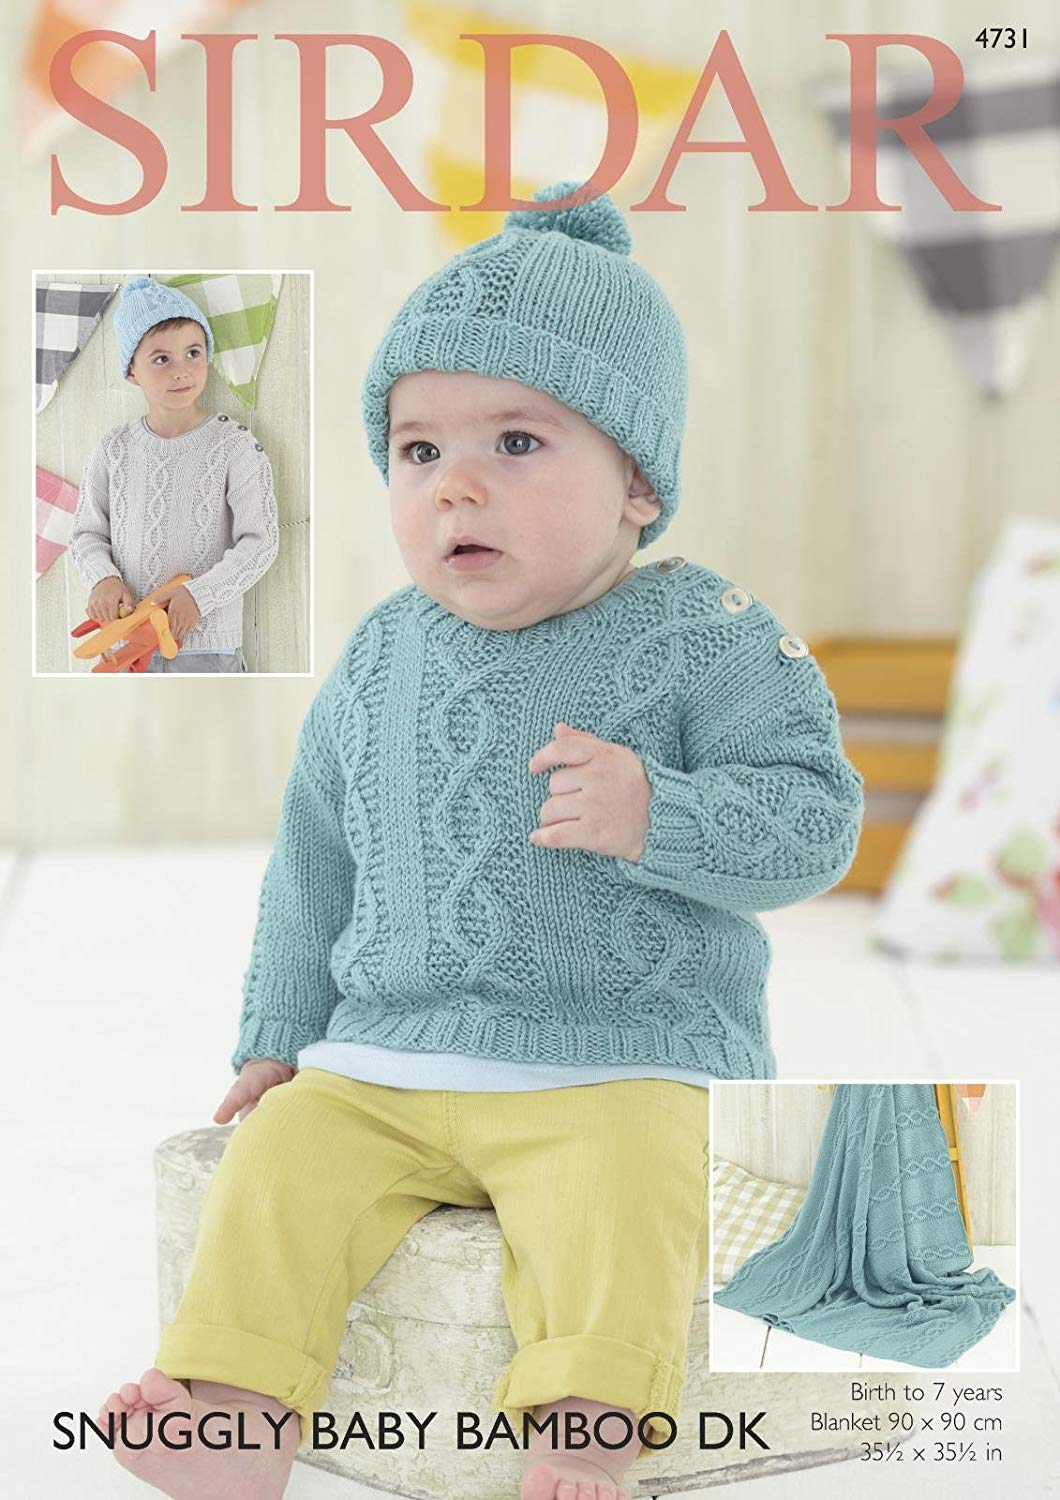 078d2c26e3c4fc Get Quotations · Sirdar Baby   Boys Sweater